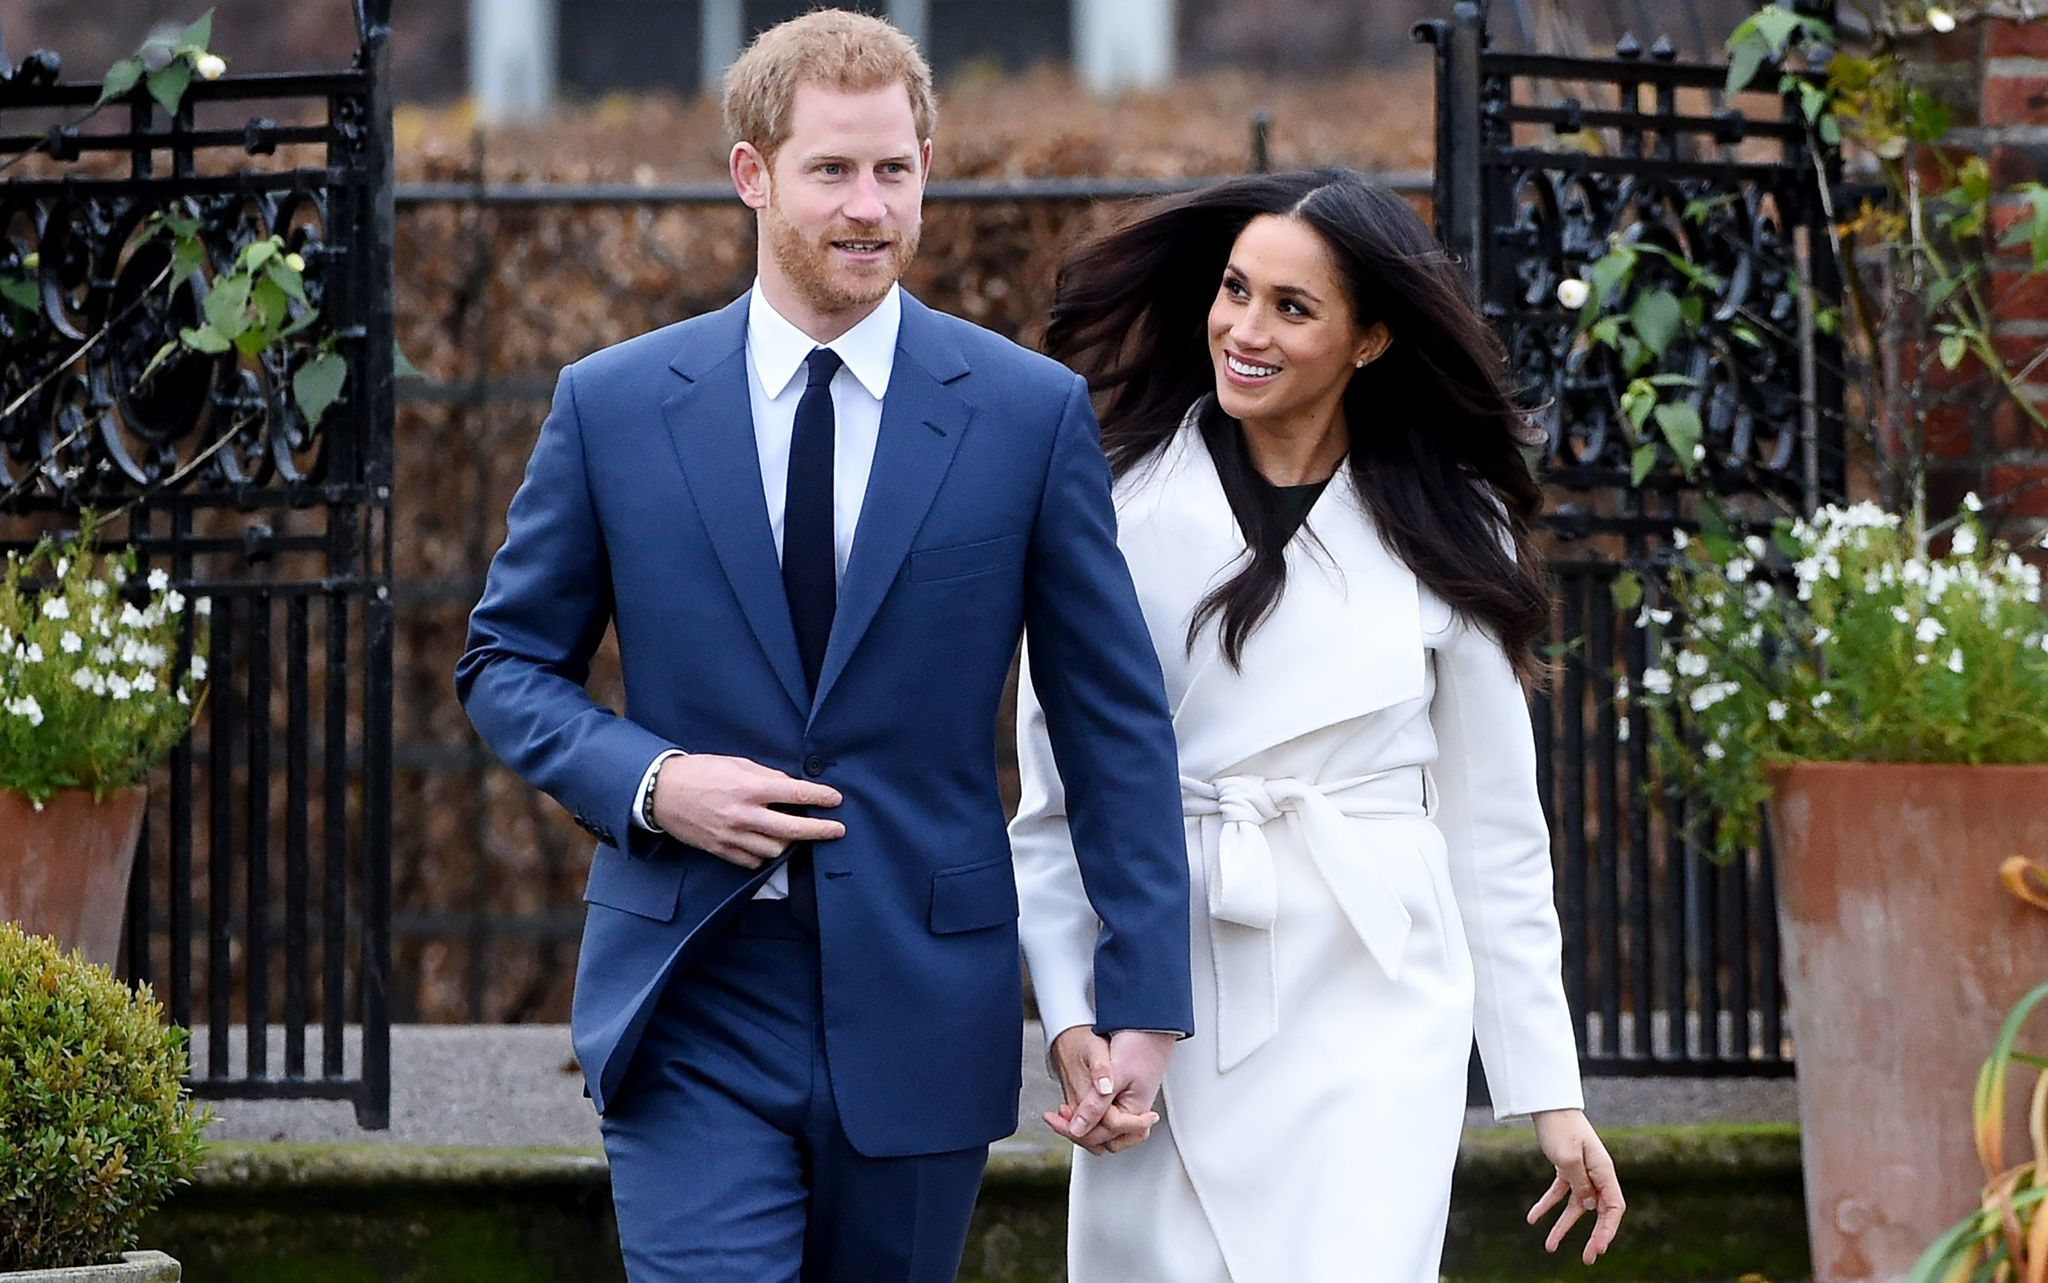 new prince new pomp essay 12062018 is prince harry the new kanye west royal is 'styling' his new wife, meghan markle looks like prince harry is taking inspiration from kanye west.